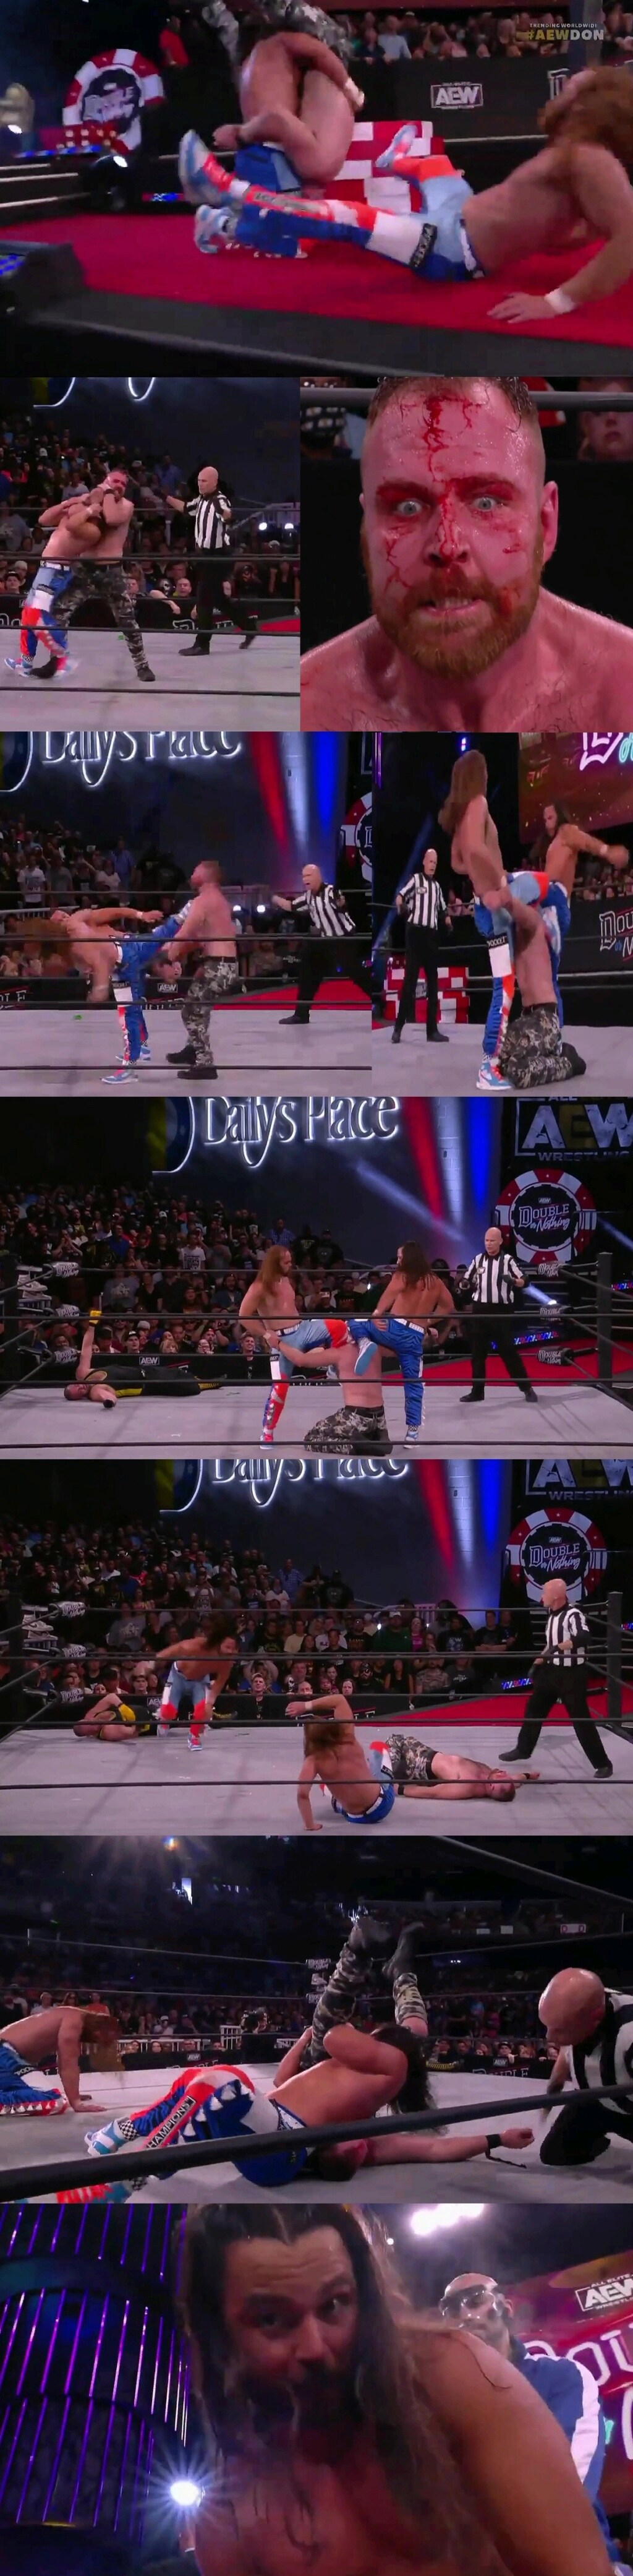 Official Wrestling PPV Topics: WWE Extreme Rules Results! - Page 2 Aew_do37